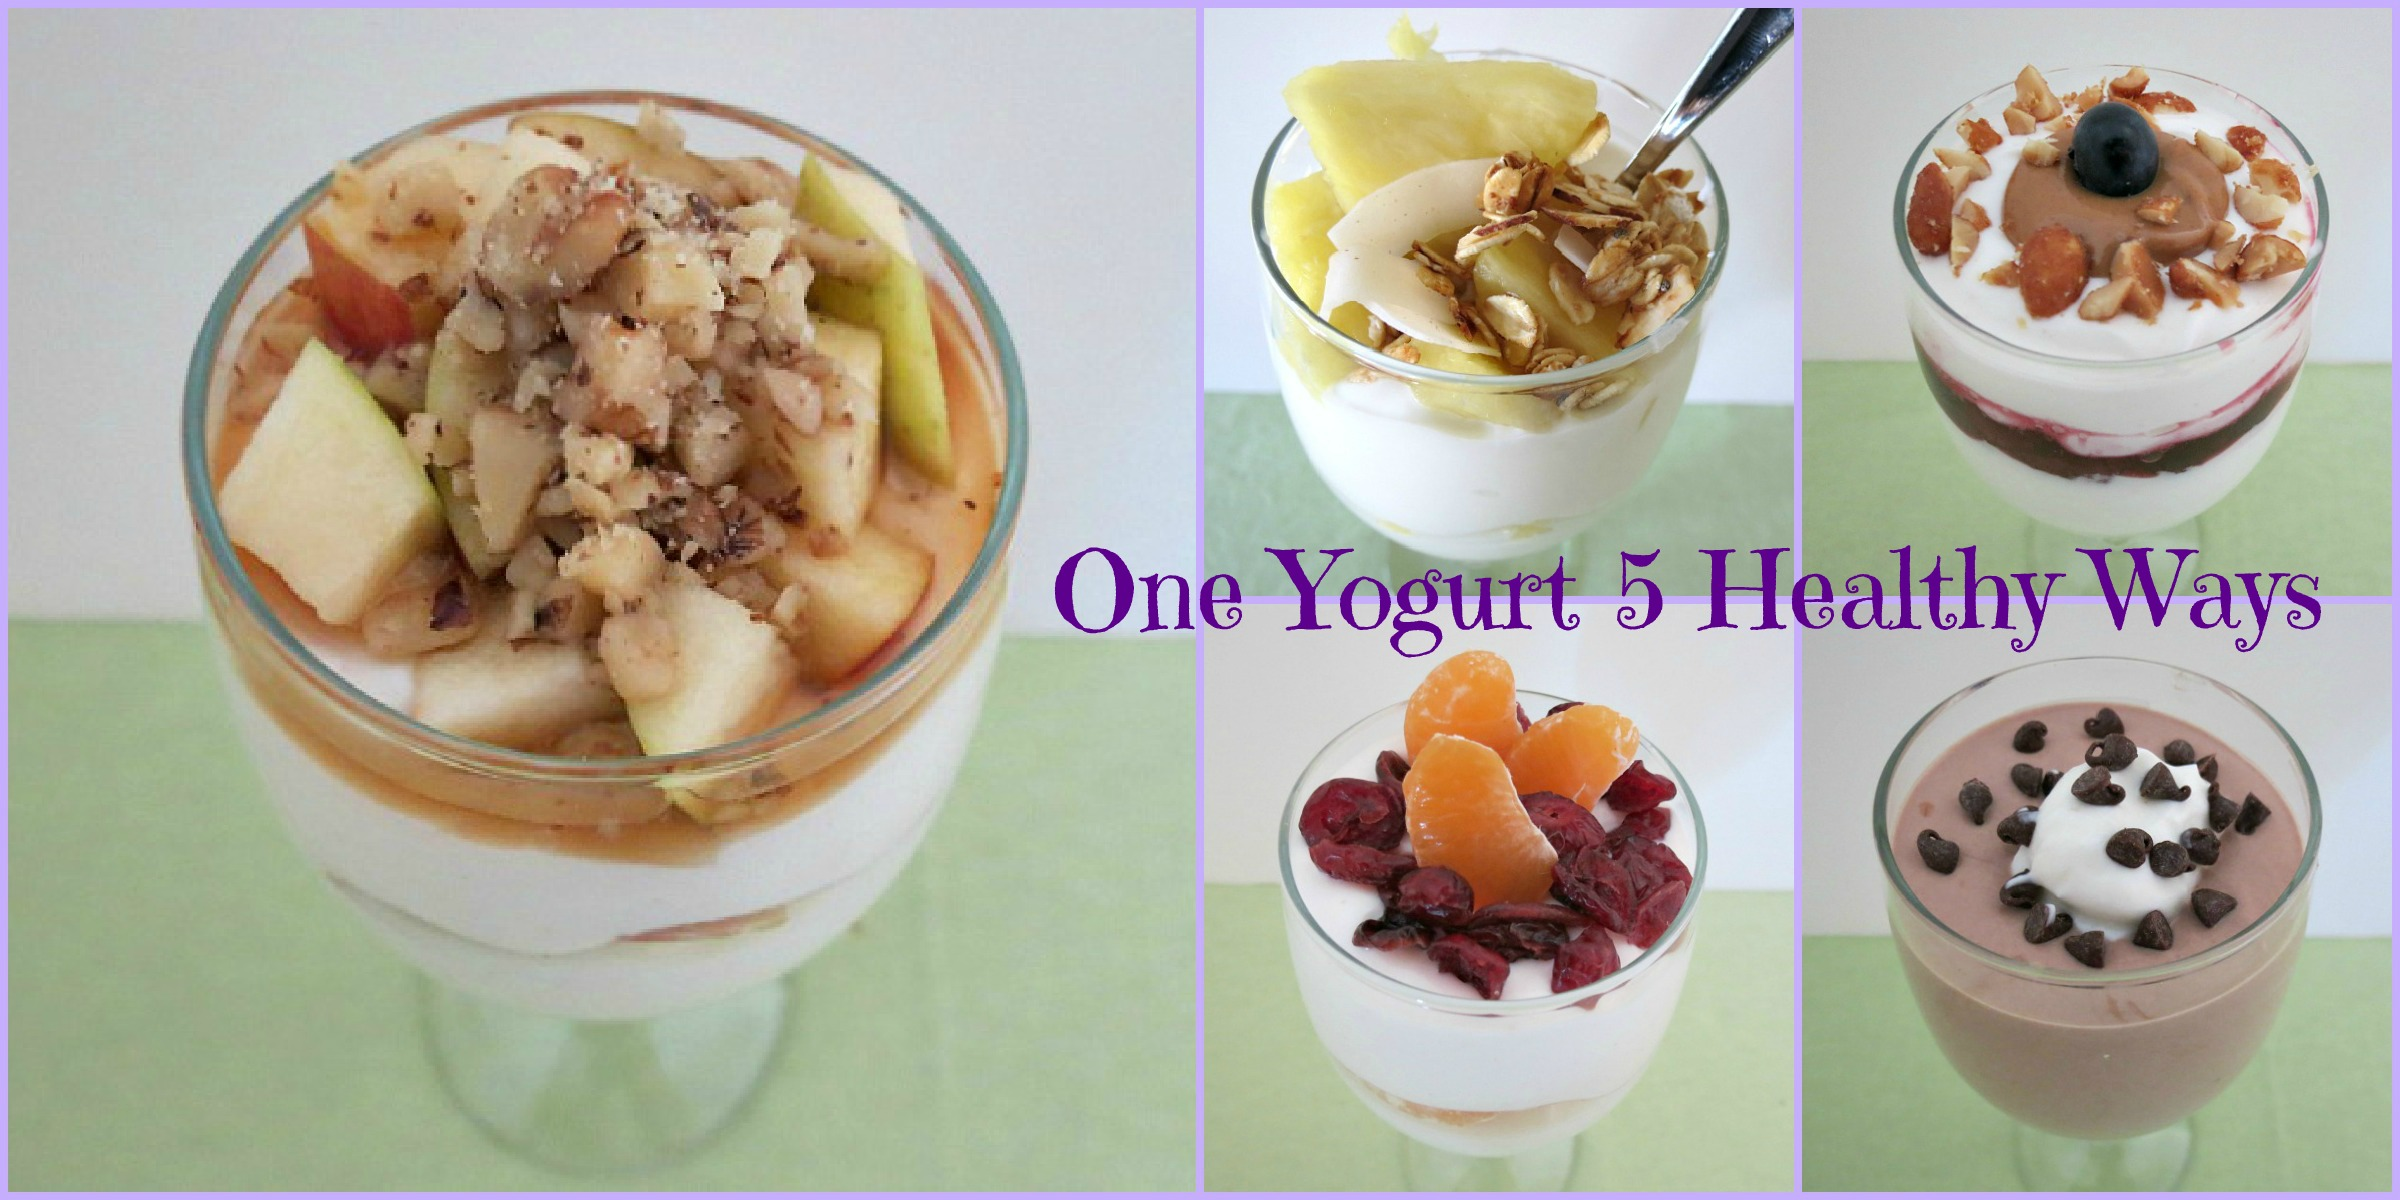 My love of Yogurt – One Yogurt 5 Ways!